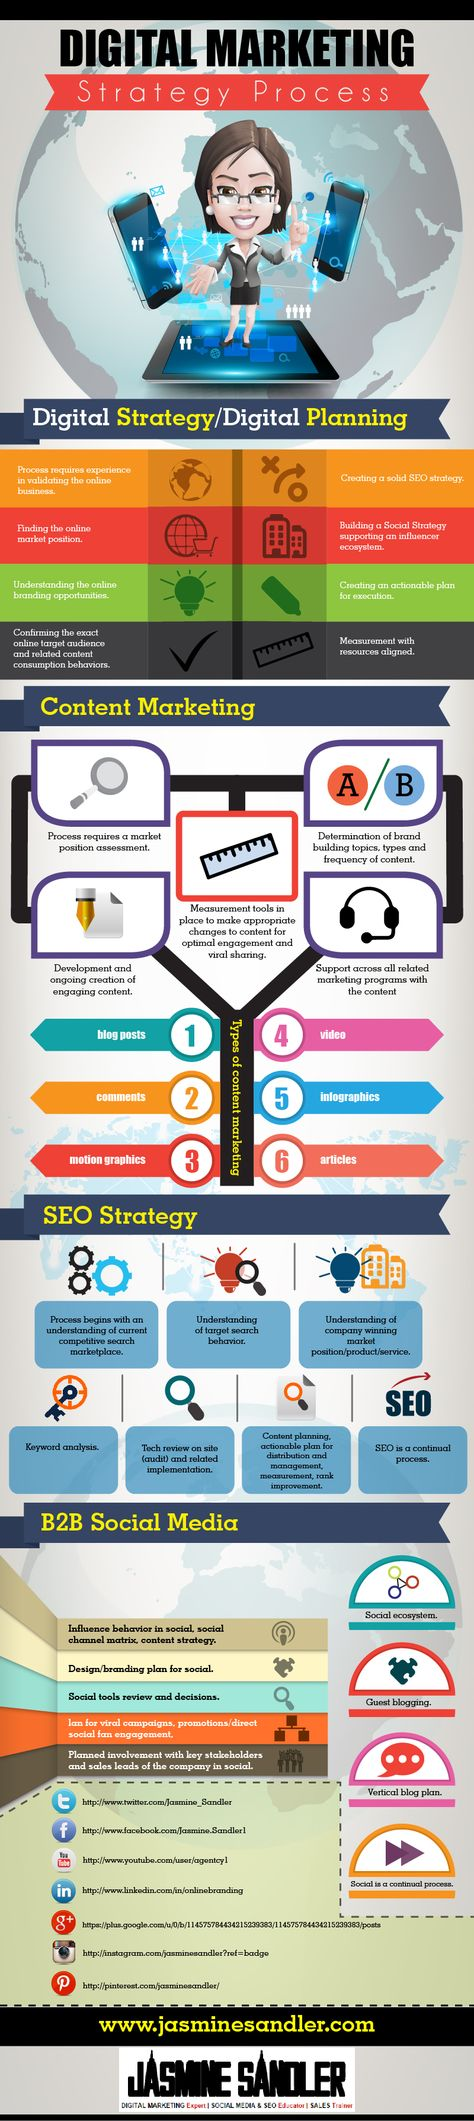 Digital Marketing Strategy Infographic | Jasmine Sandler